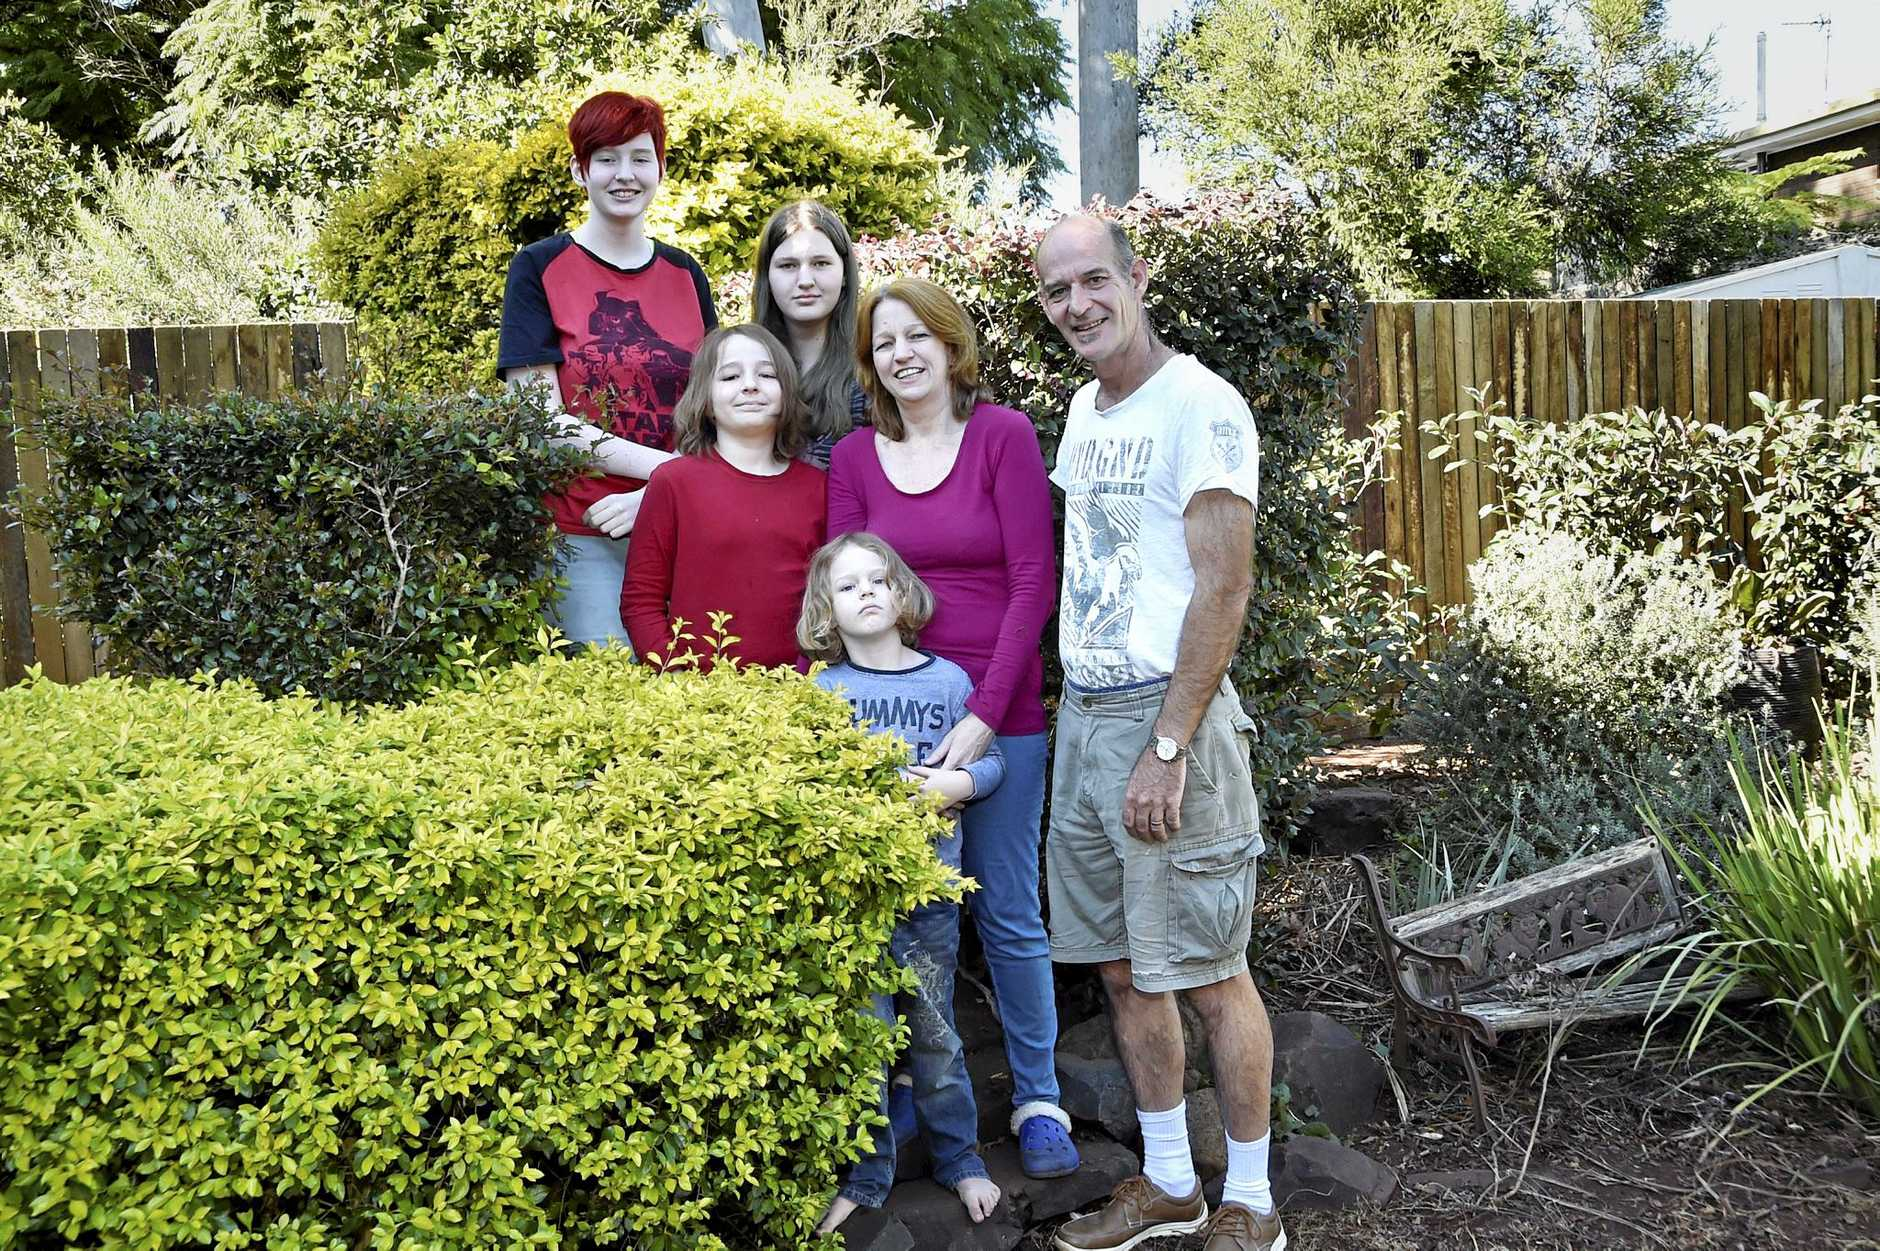 The Clark family are advocates of unschooling and home schooling nurturing each child as individuals. From back to front; Jemima, Millicent, William, Alexander, with parents -Rachael and George Clark. The oldest child, Jemima Clark, has recently graduated from a course at TAFE. June 2017